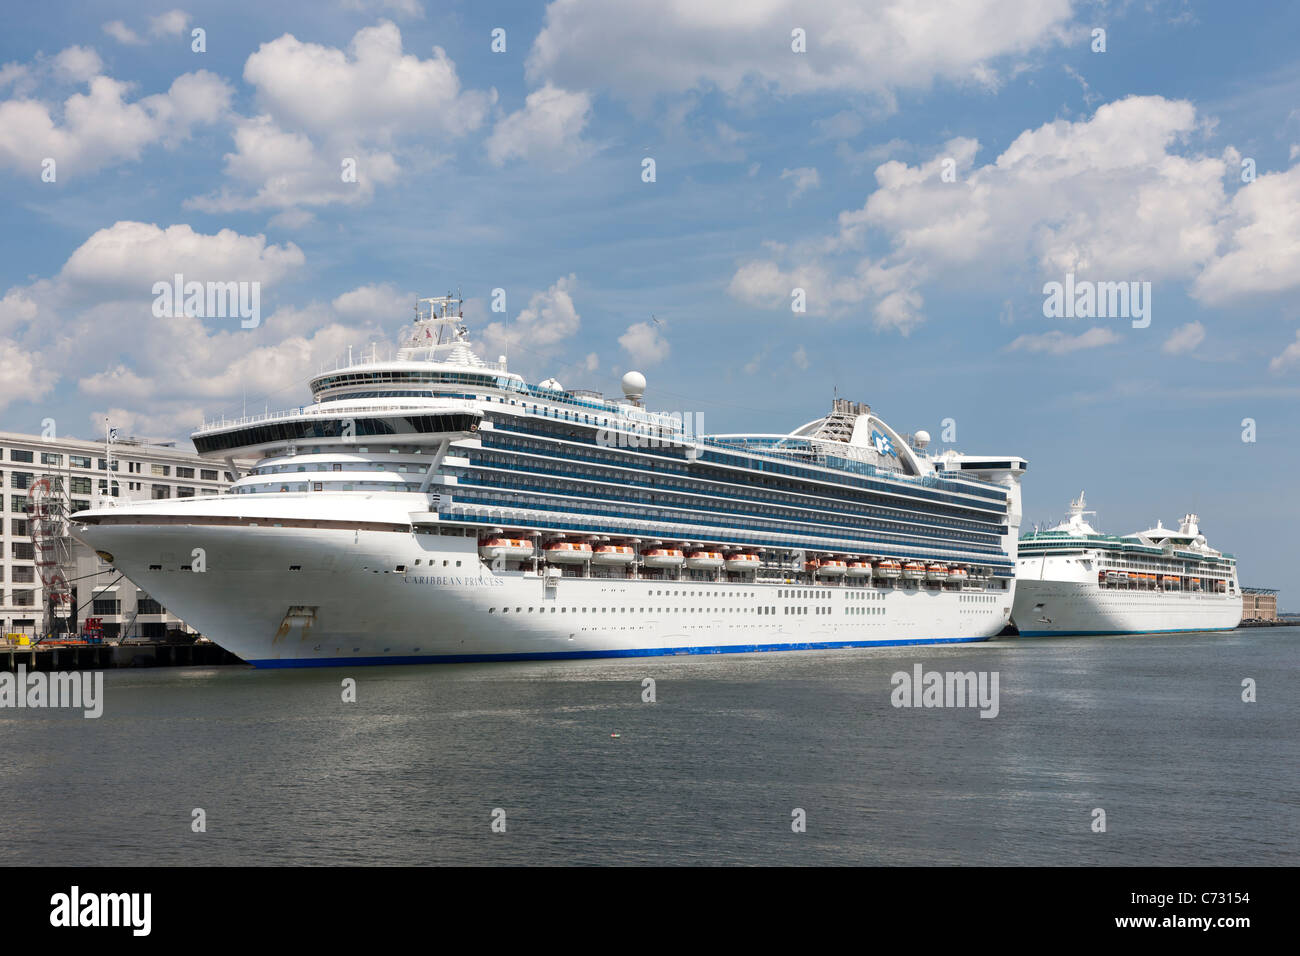 Cruise Ships Docked At The Black Falcon Cruise Port Boston Stock - Cruise ships out of boston